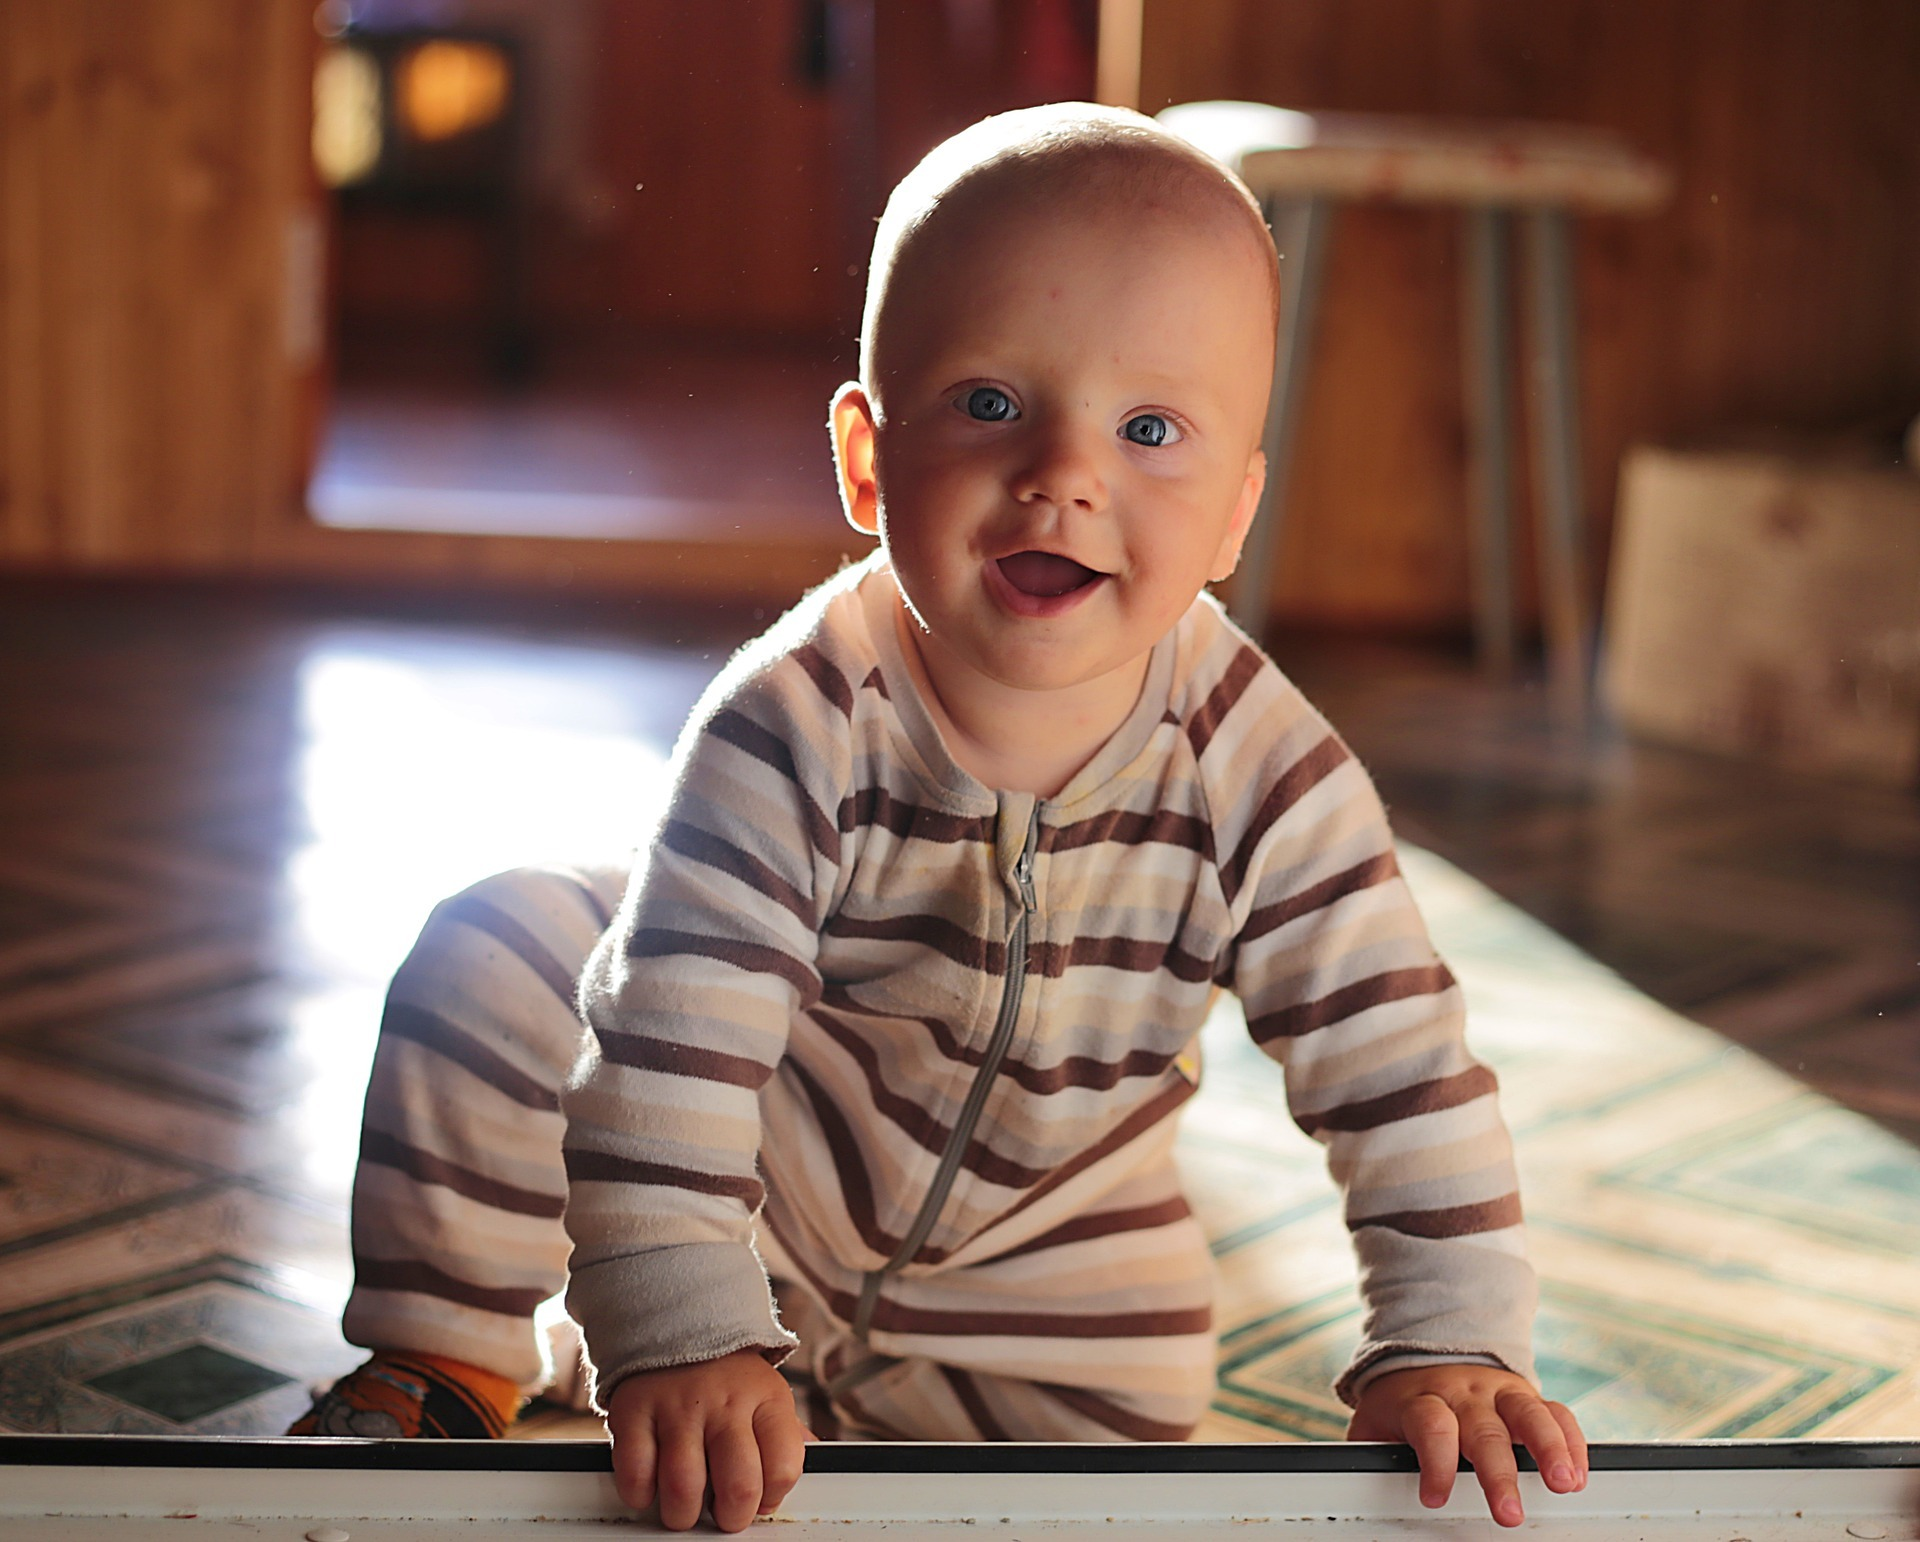 Baby proofing your home will help keep your baby safe.